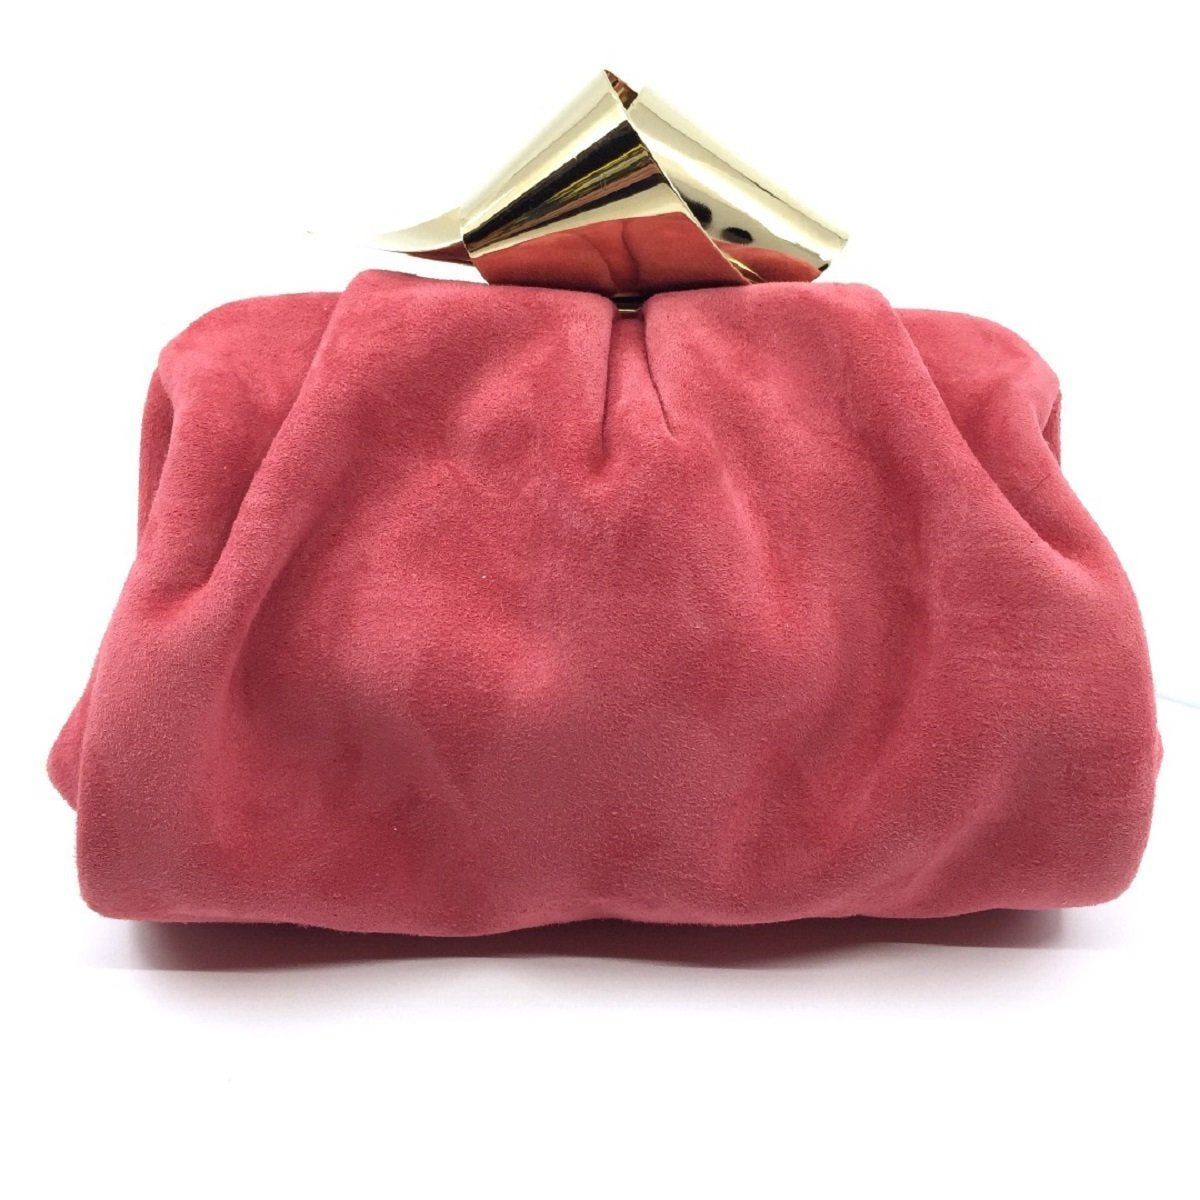 Jimmy Choo Cara/S Madeline Pink Suede Bow Knot Clasp Clutch Handbag SUE